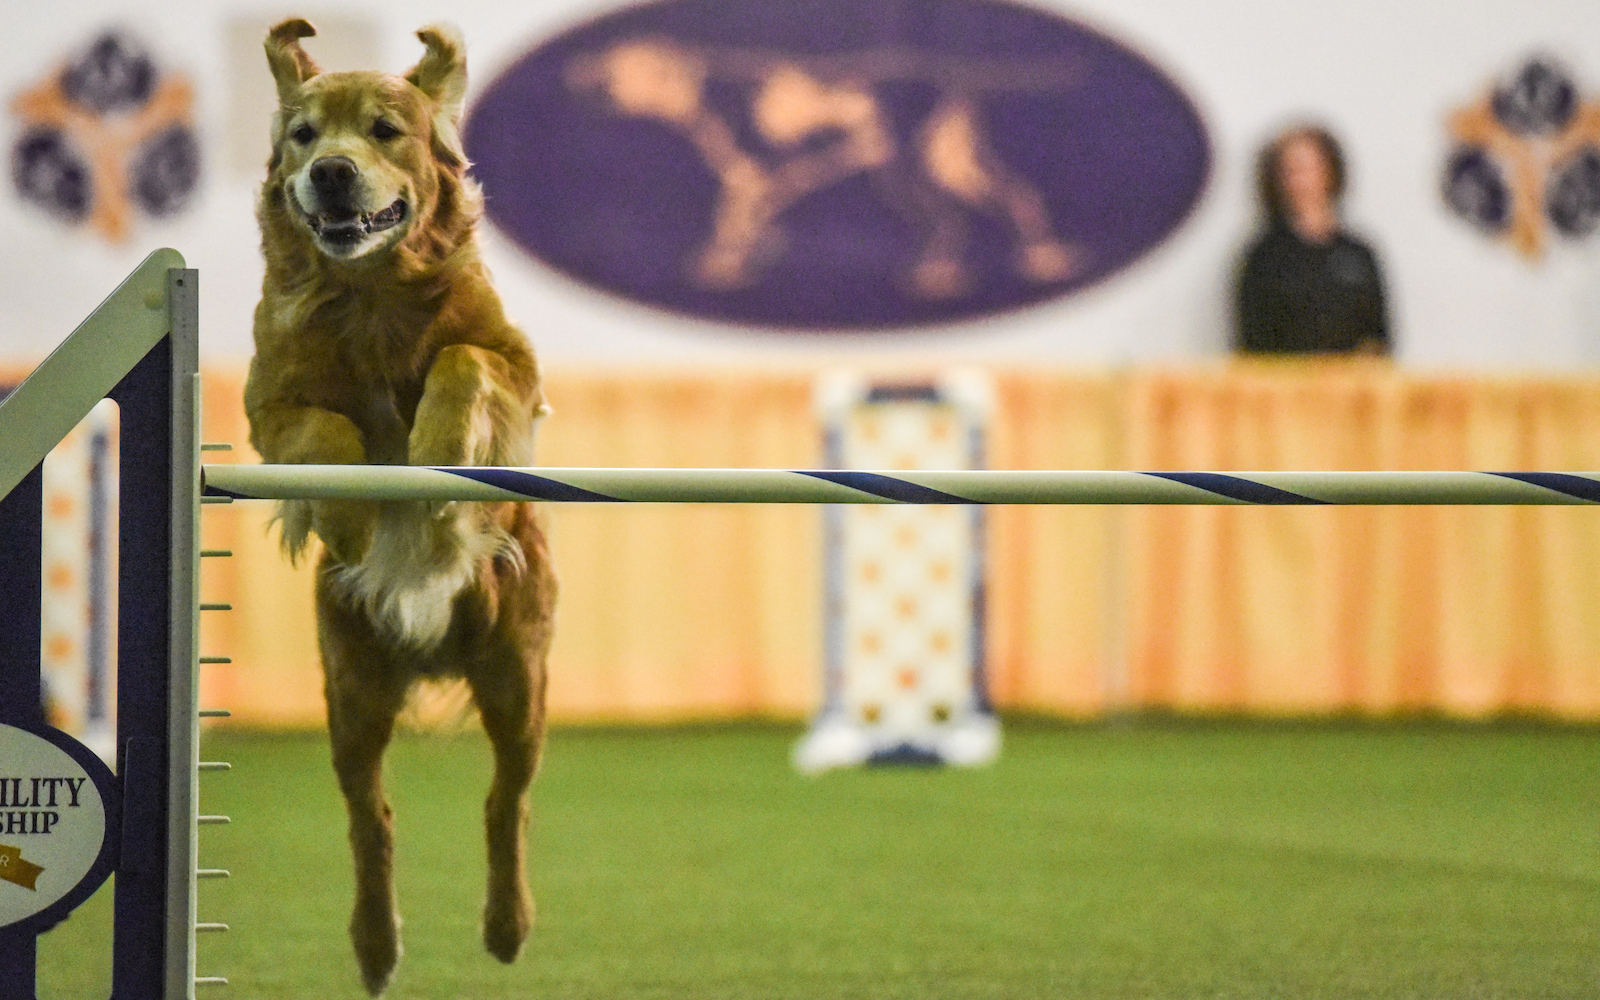 masters agility championship 2018 westminster dog show